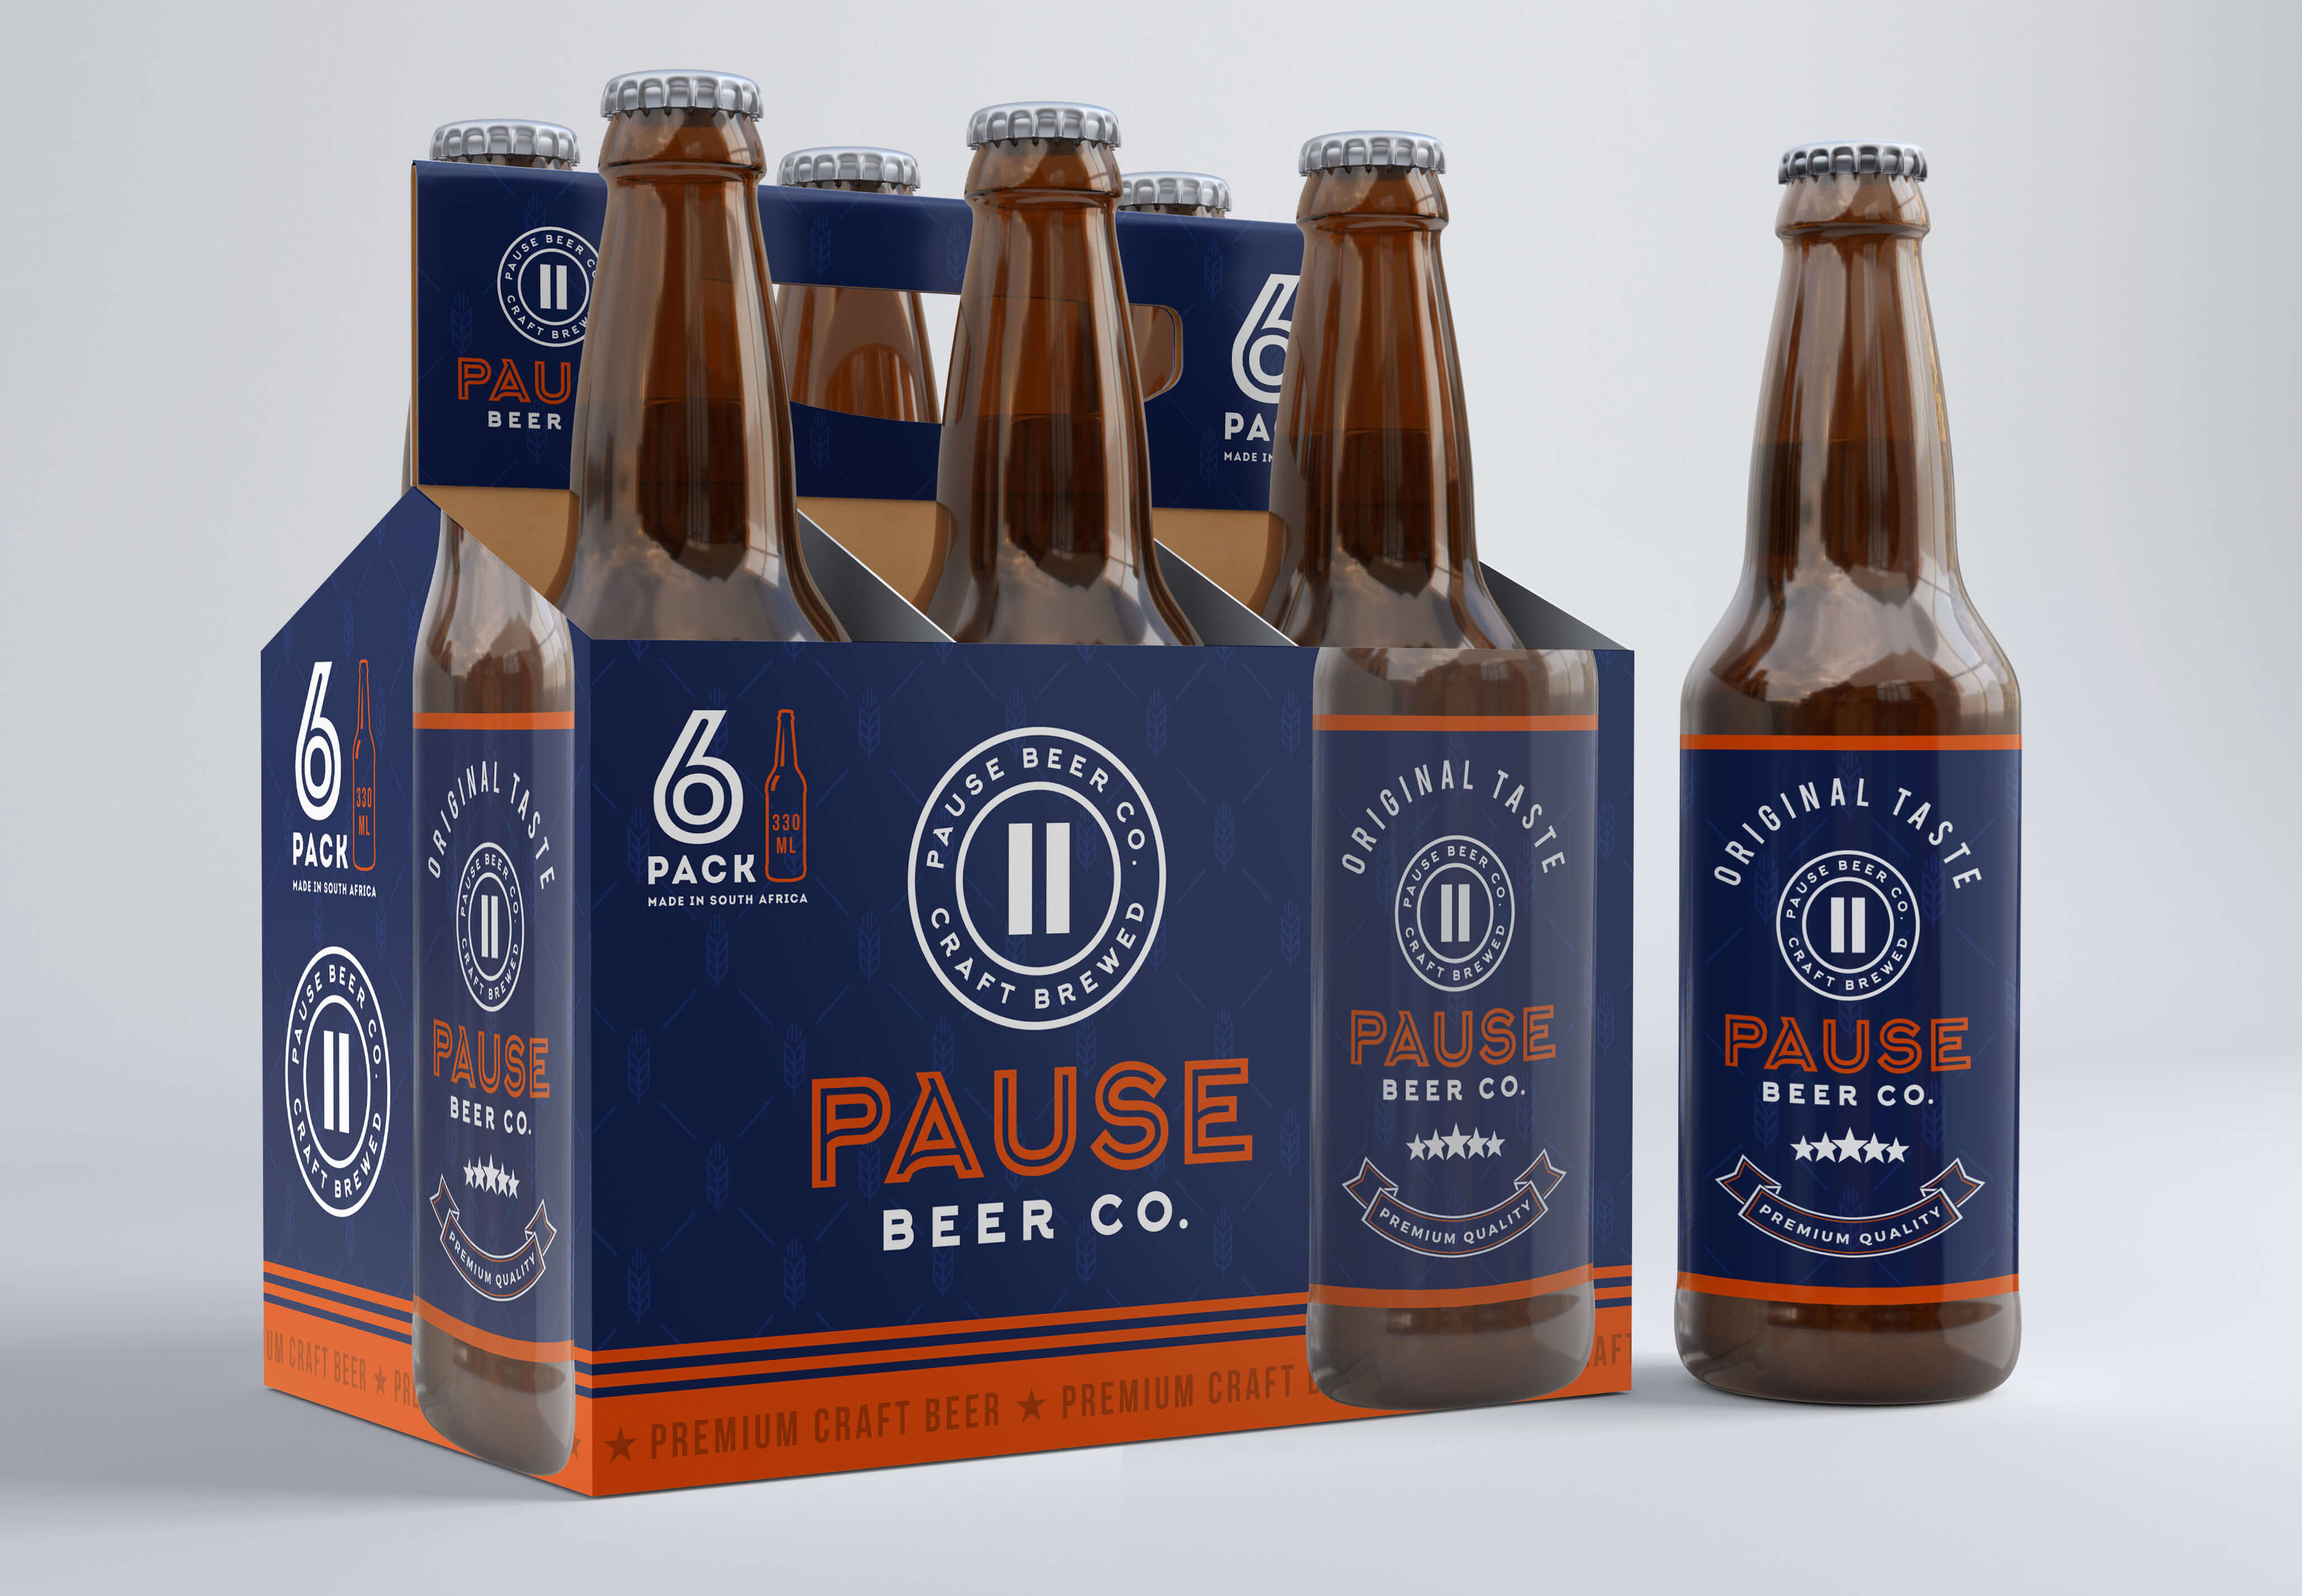 pause-beer-co-6pack-craft-beer-packaging-design-agent-orange-design.jpg